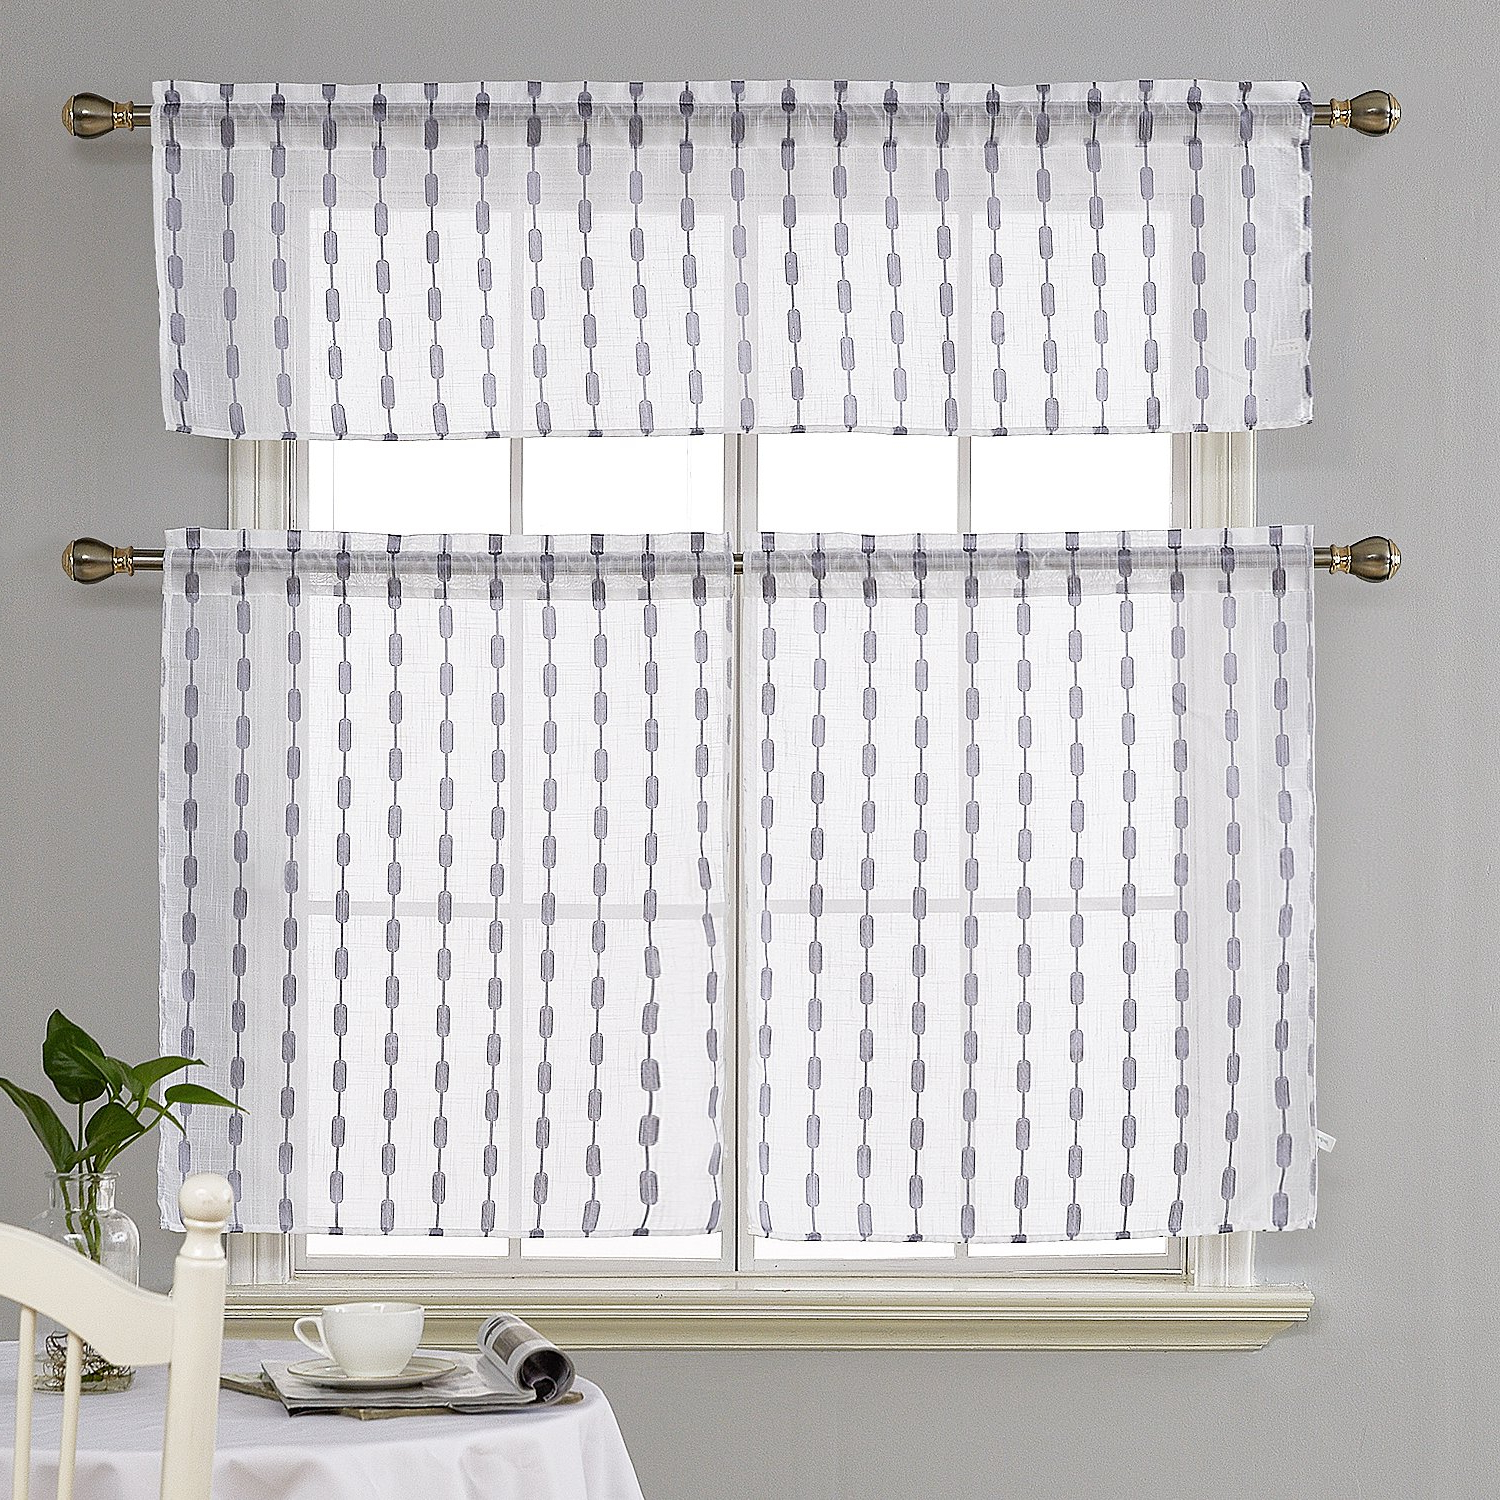 Amazon: Deconovo Rod Pocket Sheer Tier Curtains And Regarding Most Recently Released Coffee Drinks Embroidered Window Valances And Tiers (View 3 of 20)